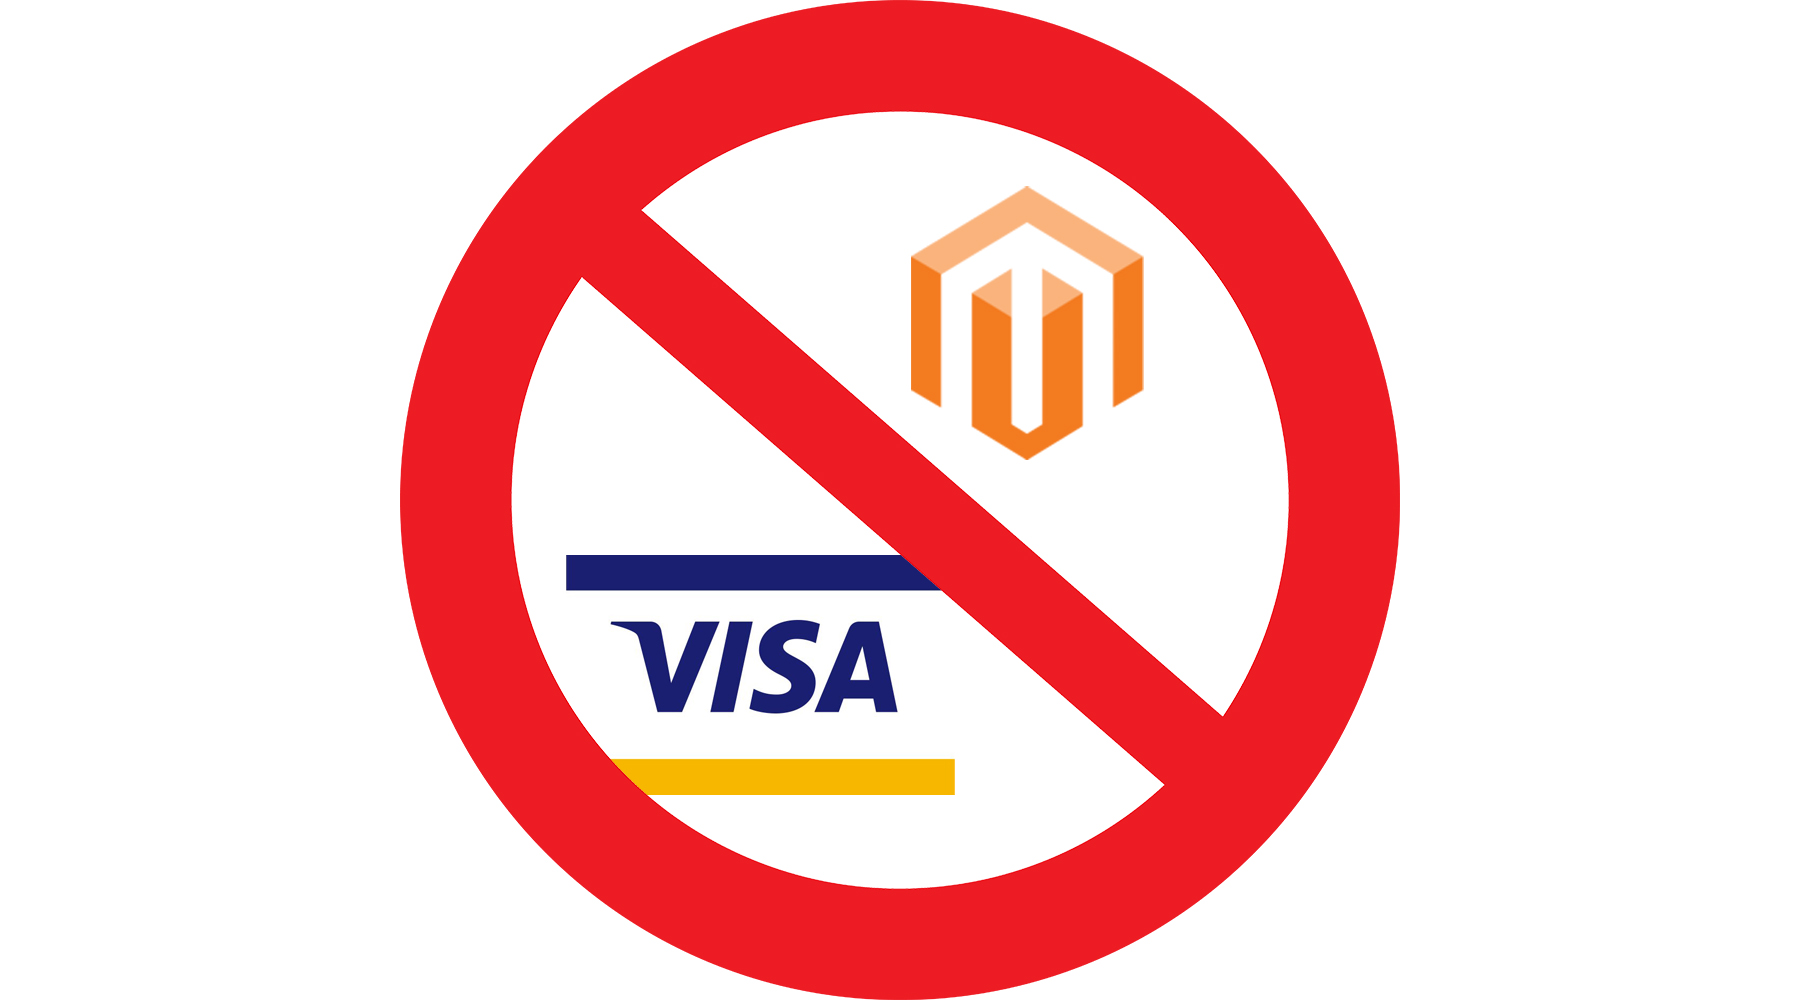 Magento 1 is end of life (EOL) in June of 2020 and the latest news coming through loud and clear is that the payments processor Visa are now 'urging' e-commerce merchants running on Magento 1.x to migrate to 2.x as the former will become fully unsupported after the end of July 2020. Period.